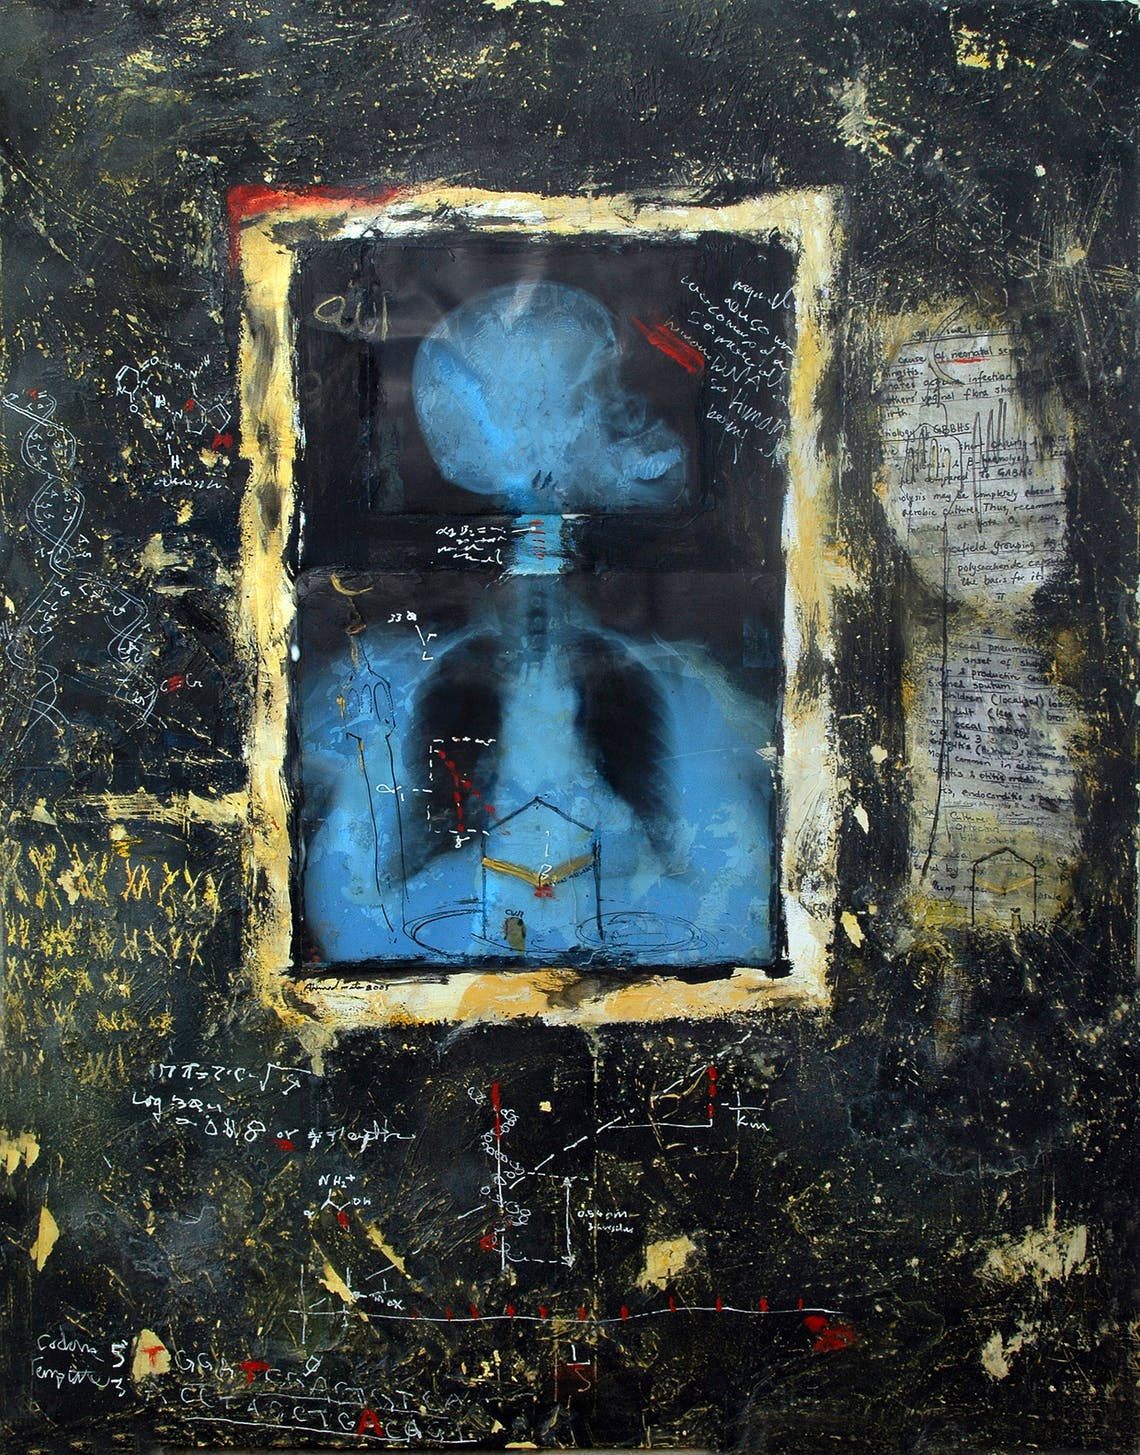 X Ray 3 Ahmed Mater 2003 Mixed media and X ray film on canvas 135 x 105 cm The British Museum collection